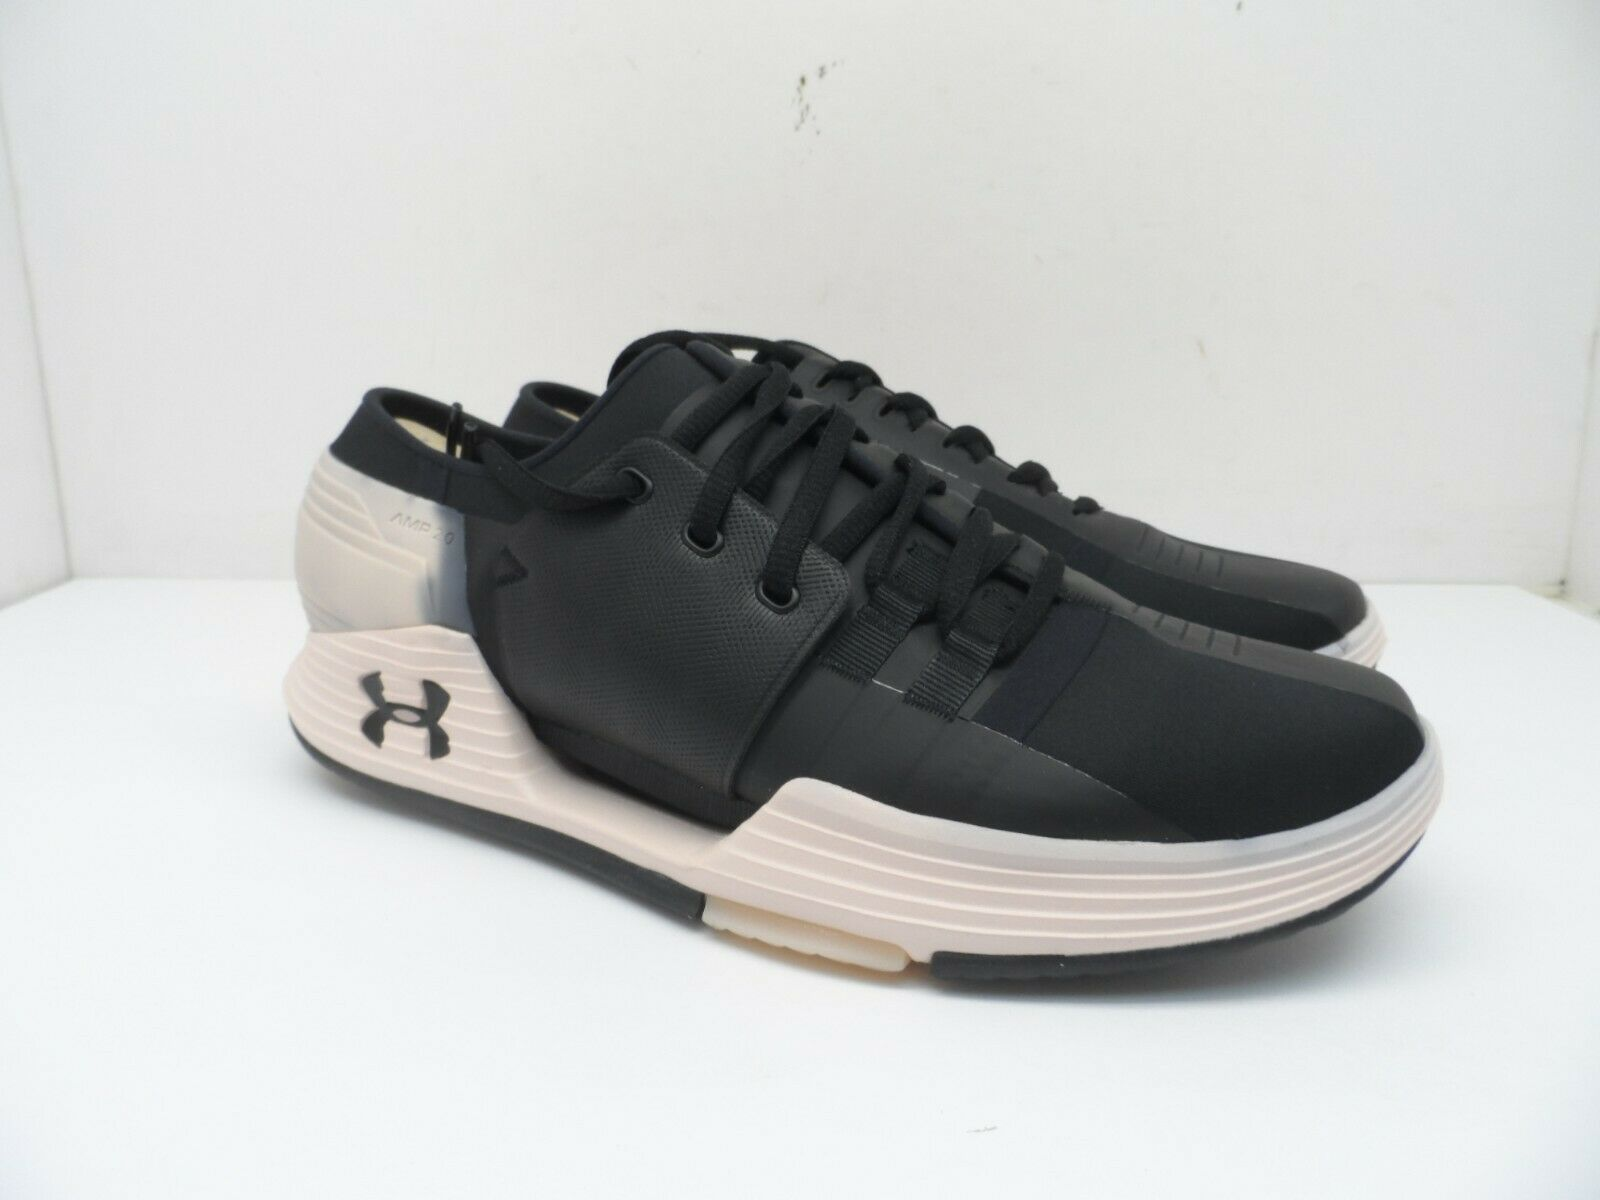 Primary image for Under Armour Women's SpeedForm AMP 2.0 Training Shoes Black/X Ray Size 9.5M